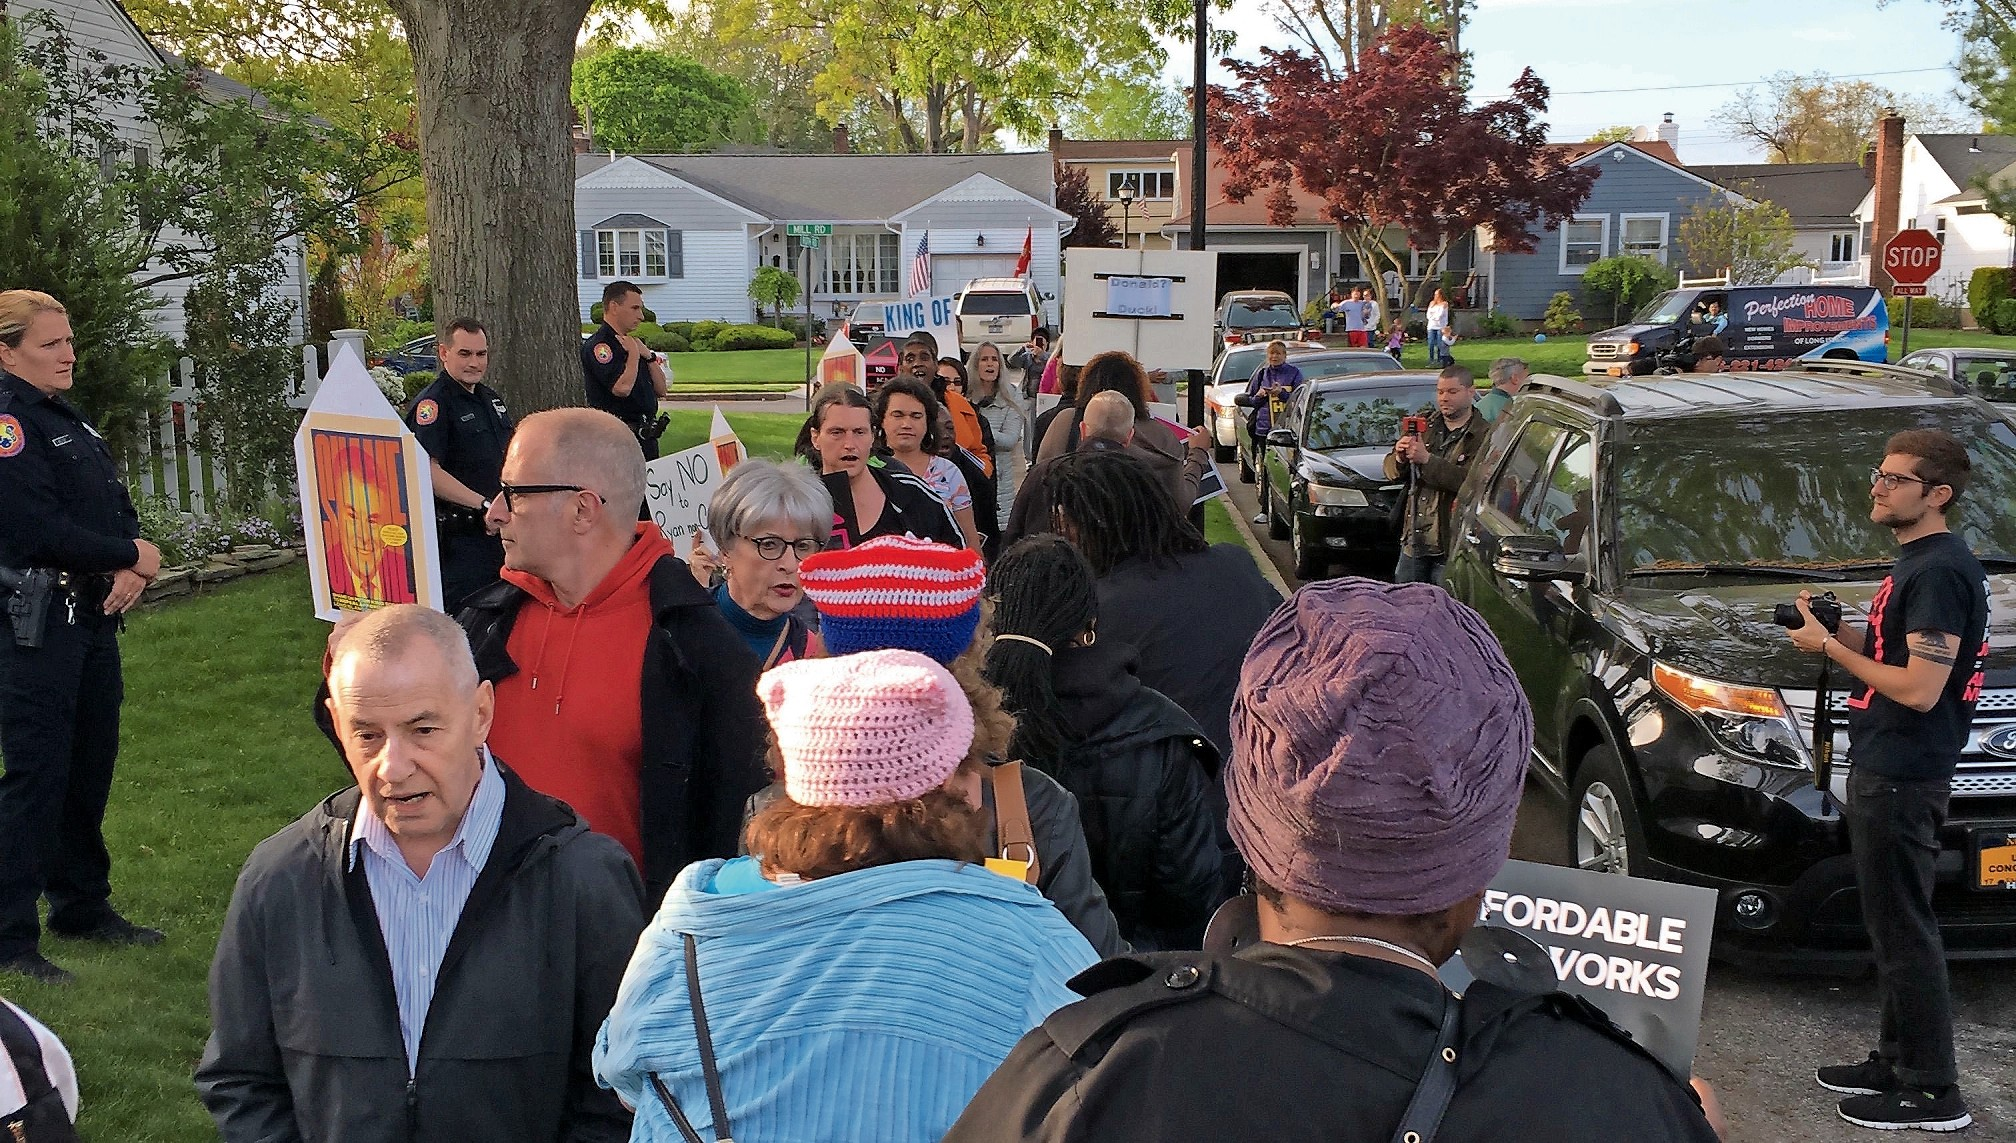 The demonstration was confined to the sidewalk on Roth Road, where King lives. The congressman was not home when protesters gathered outside his house.